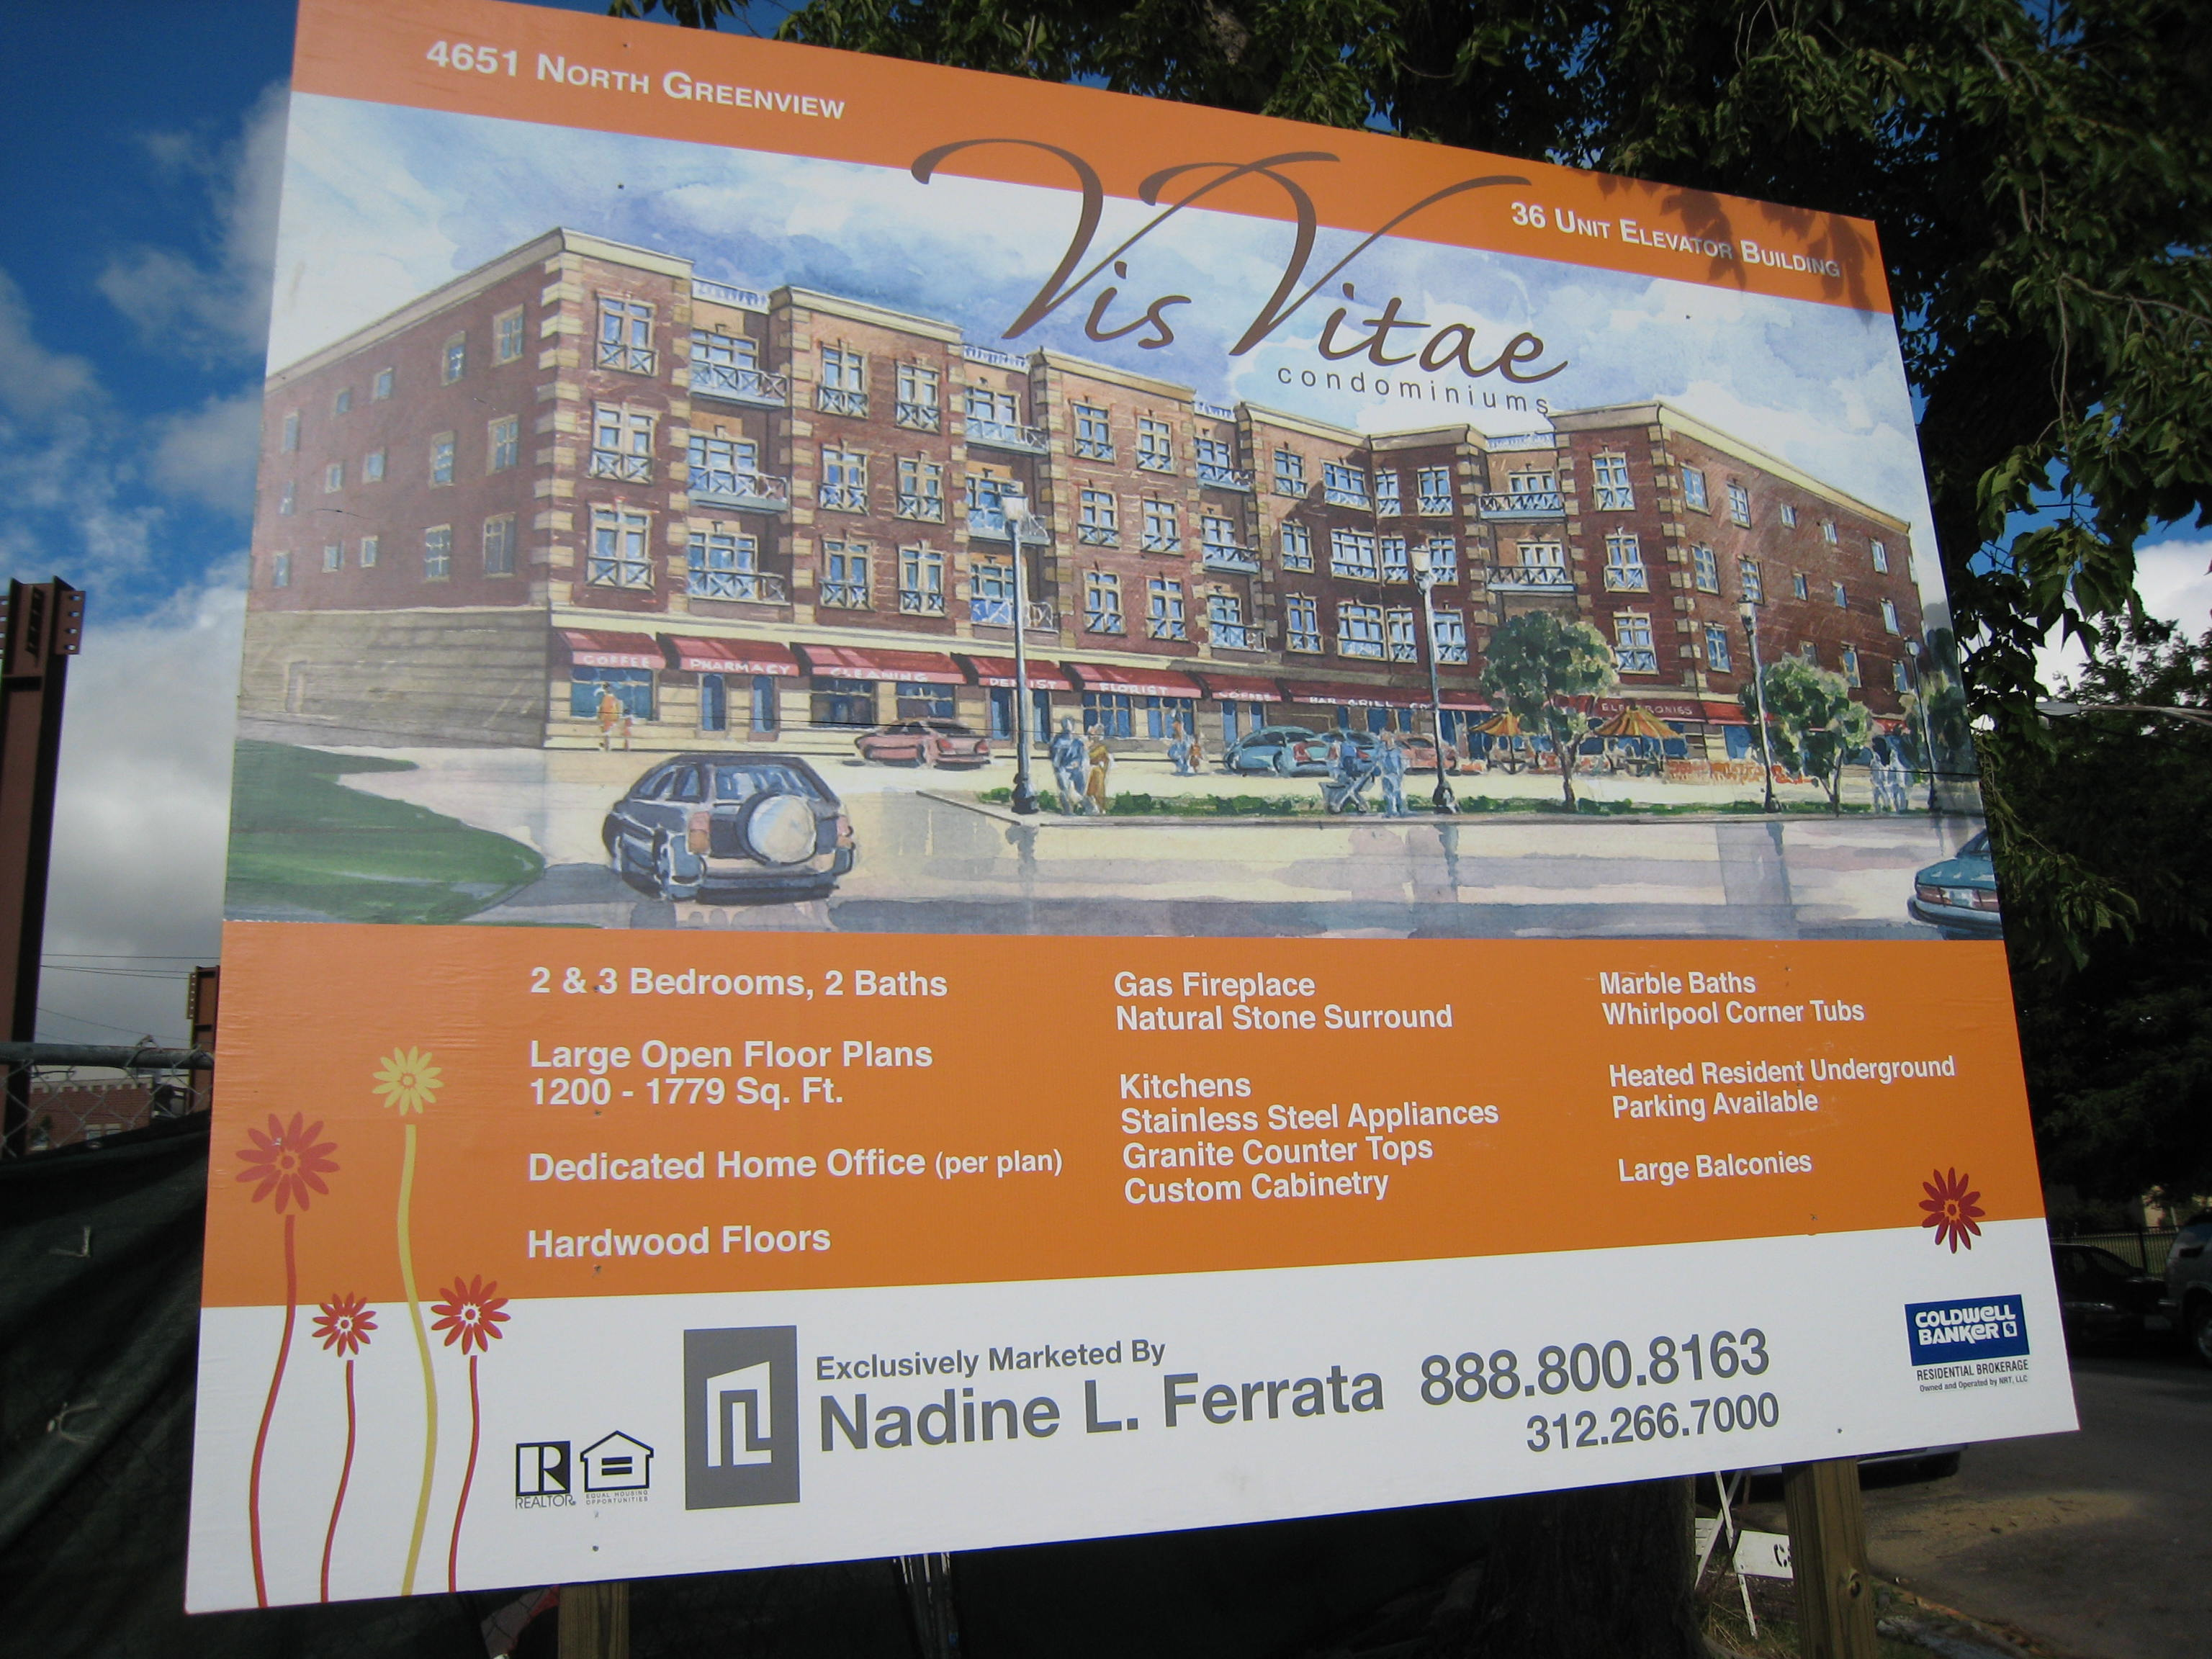 Metro Asset Management Has Signed Starbucks As A Tenant For One Of The  Ground Floor Retail Spaces At Vis Vitae, A 48 Unit Condo Project At The  Southwest ...